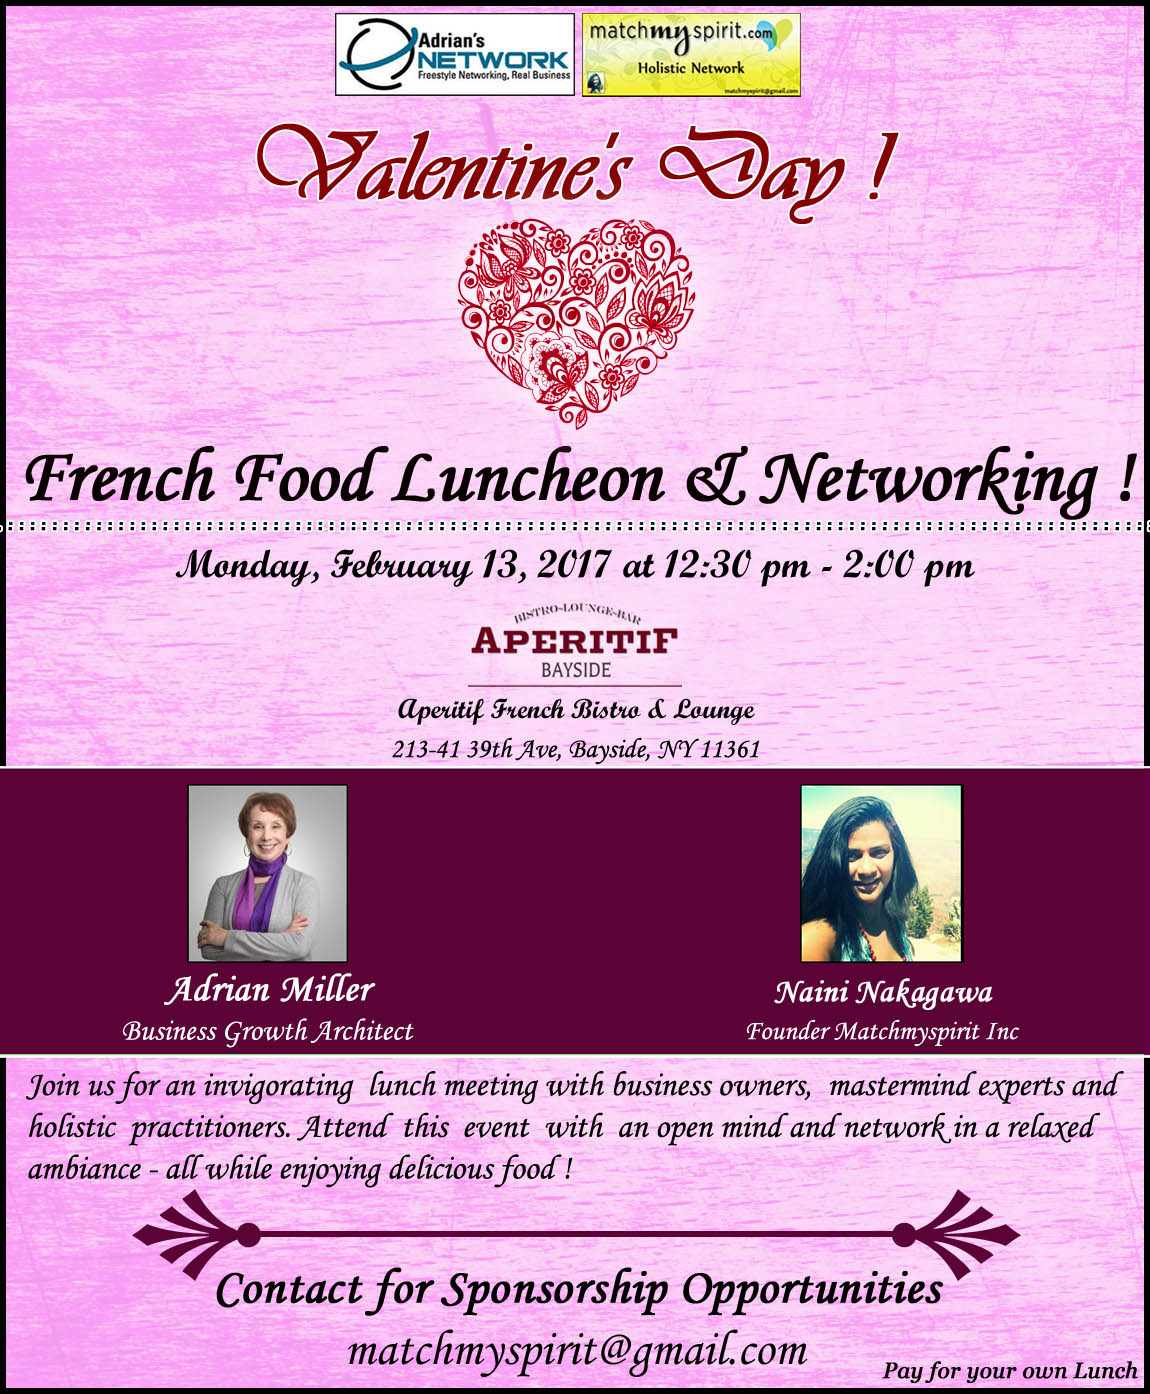 Valentine's Day French Food Luncheon & Networking !